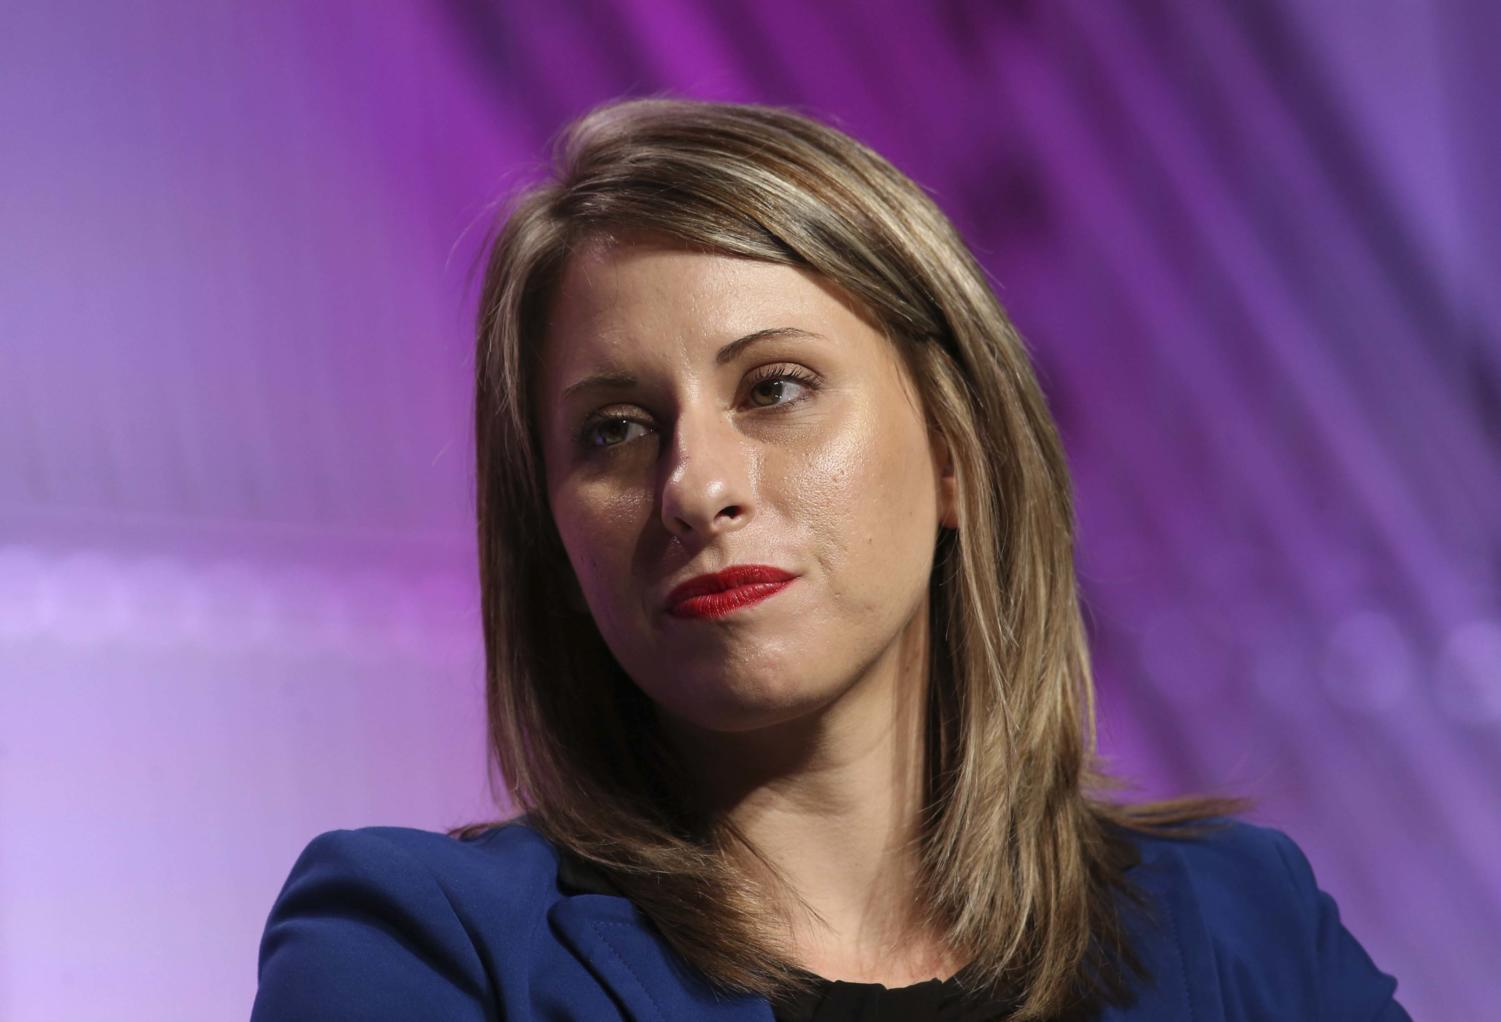 While resigning, California Rep. Katie Hill promised a legal fight over leaked private photos.